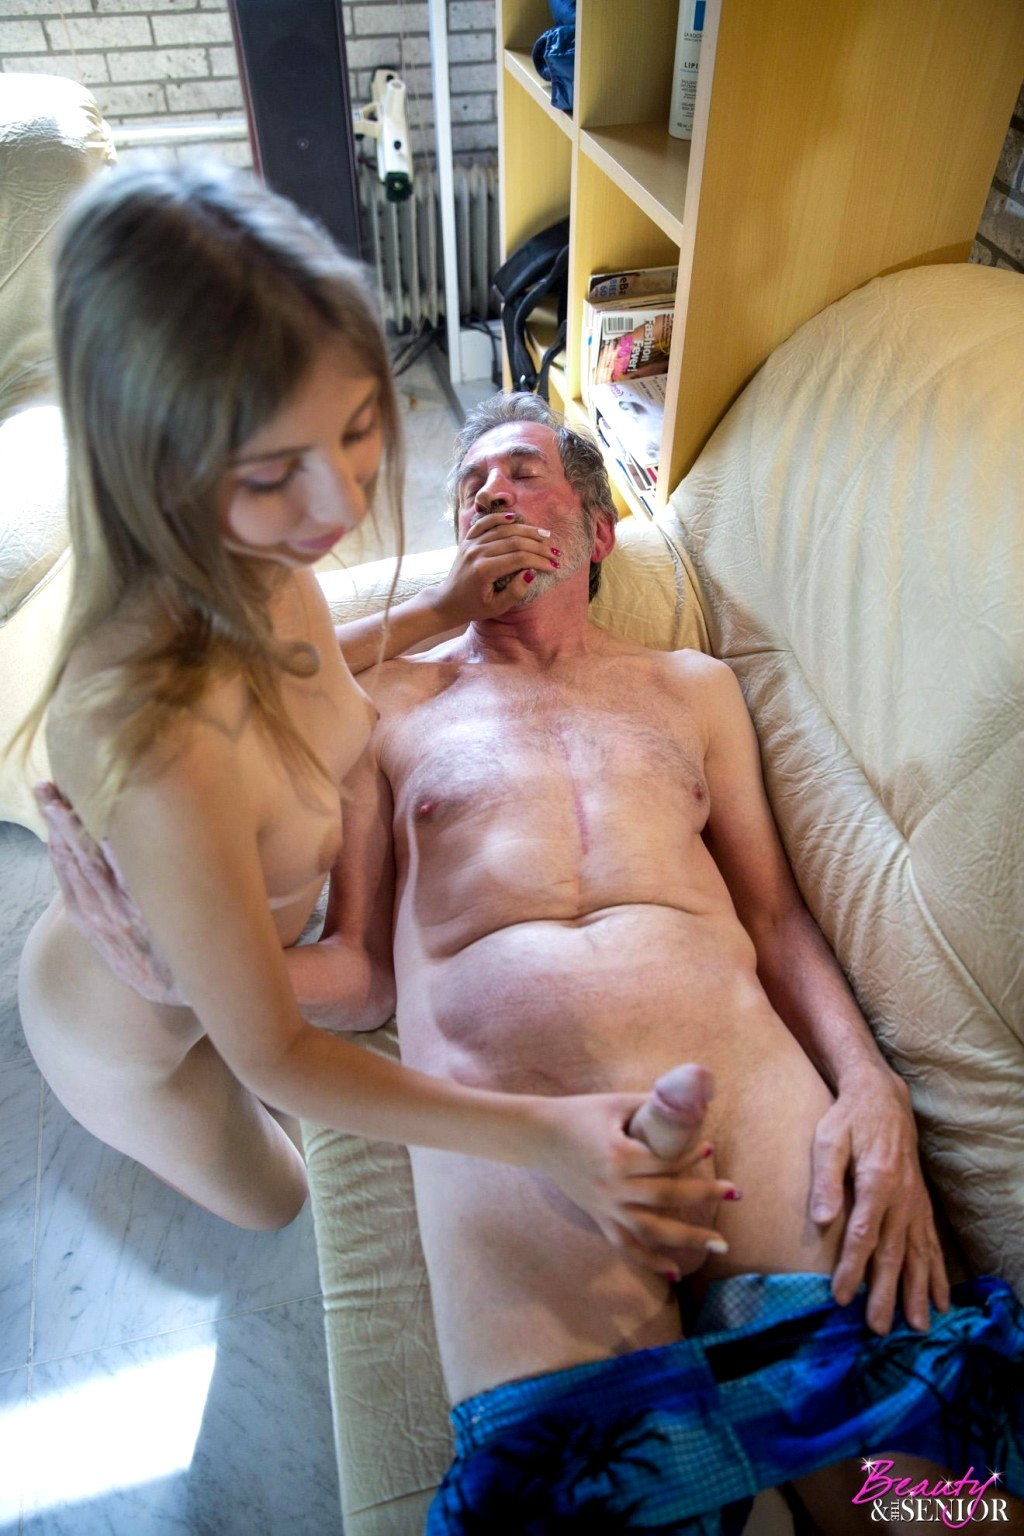 from Holden father with nude naked daughter